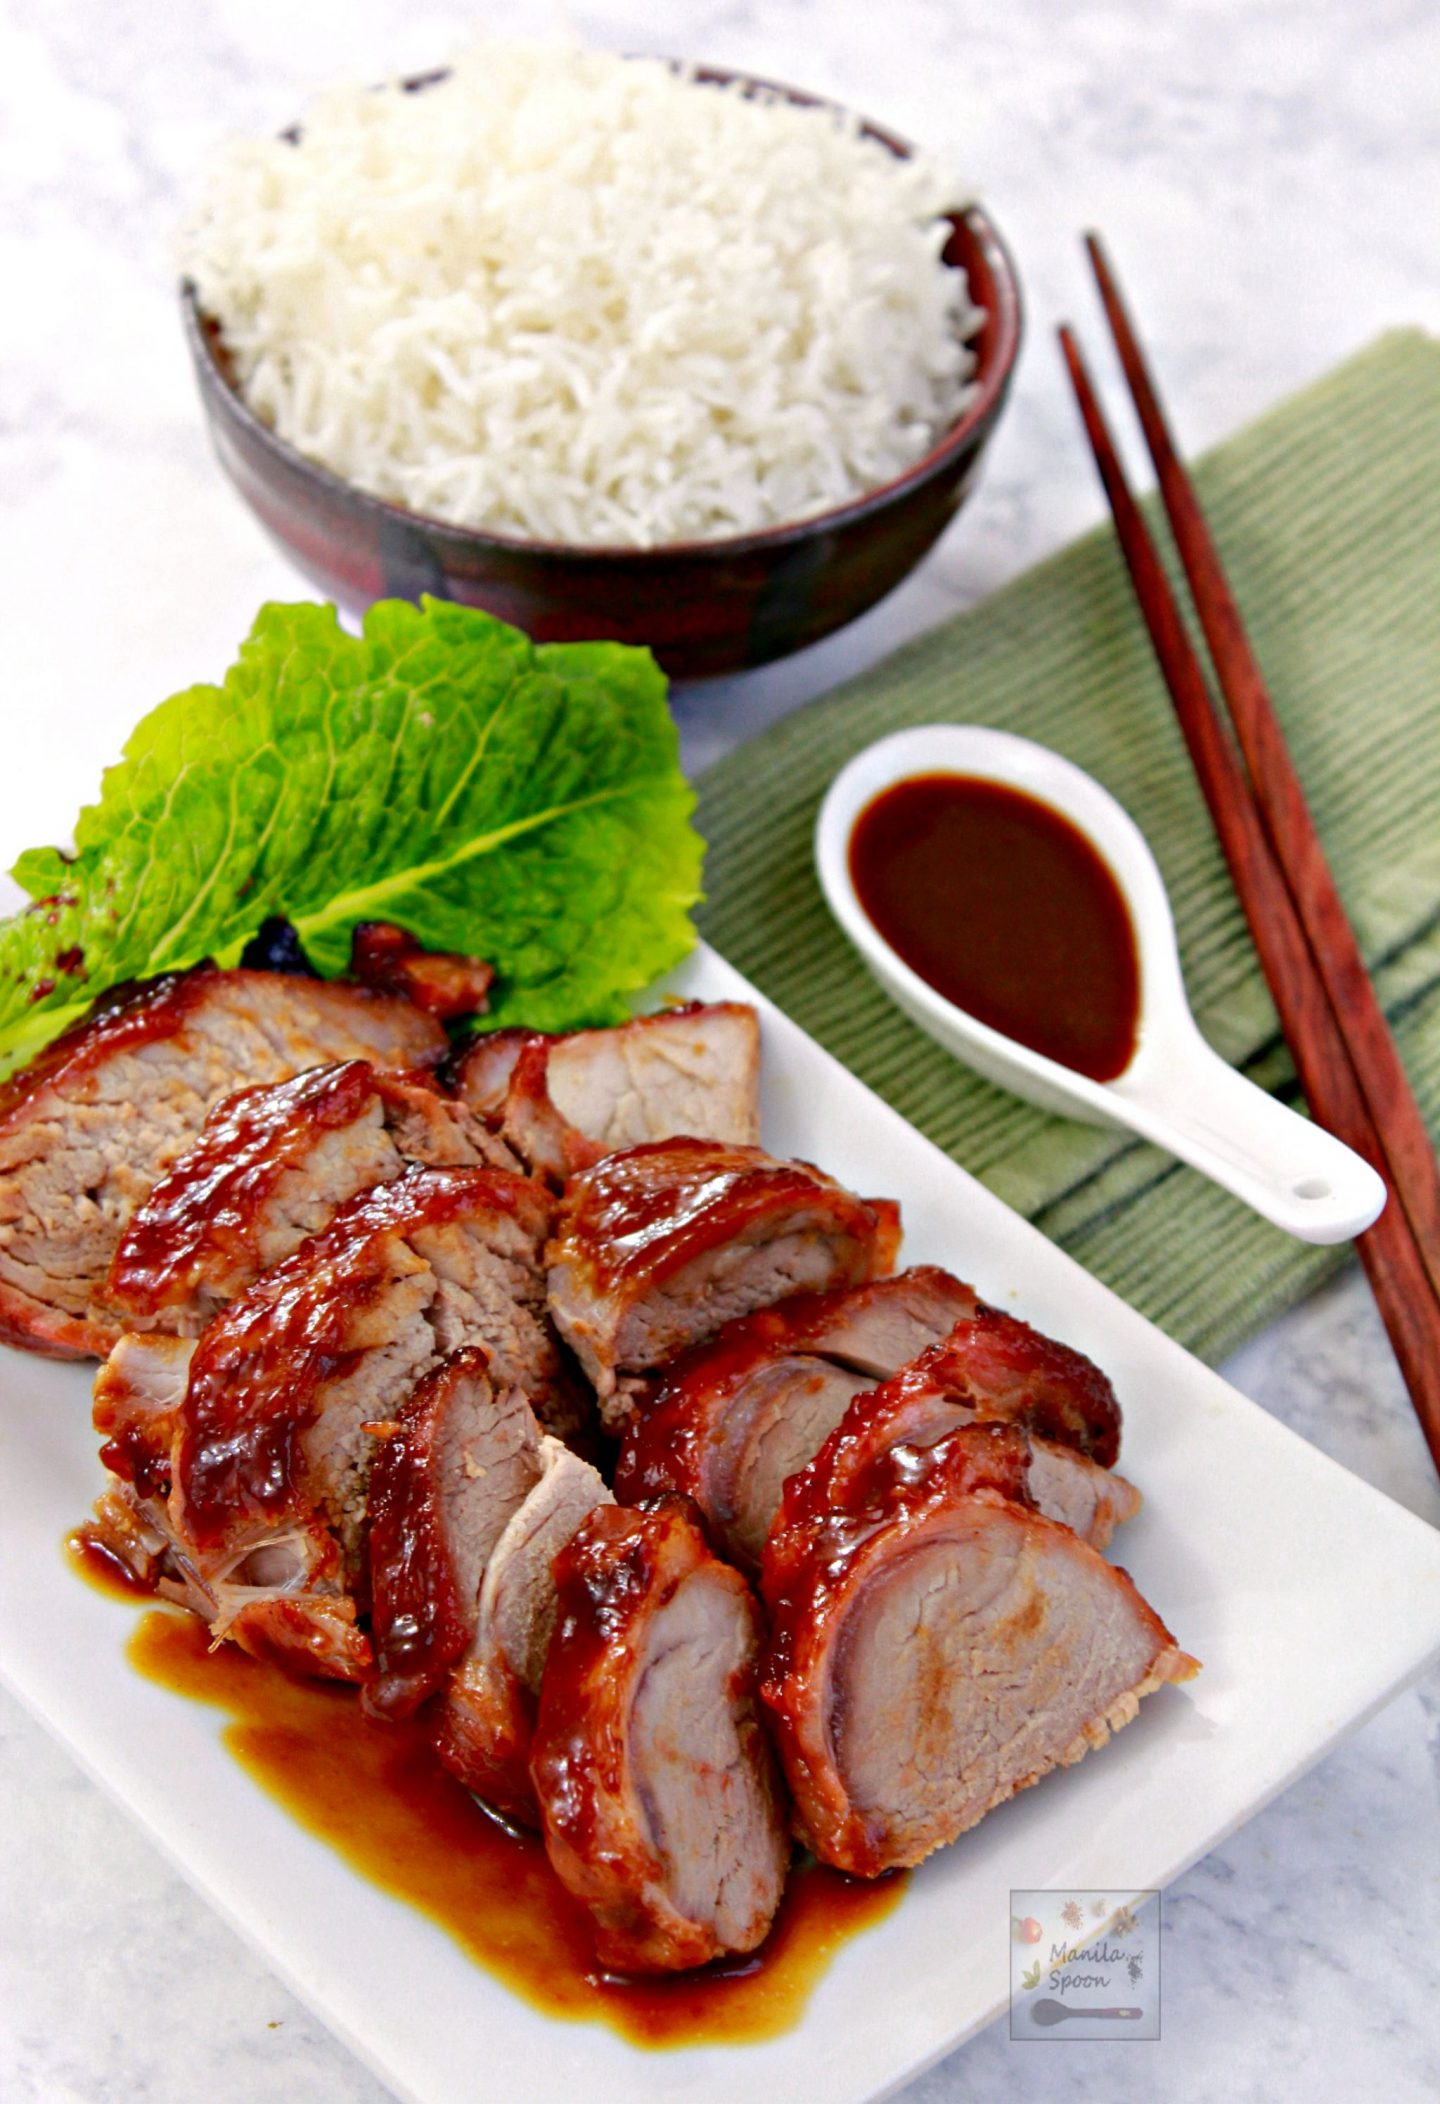 Shortcut Char Siu (Chinese Barbecue Pork)